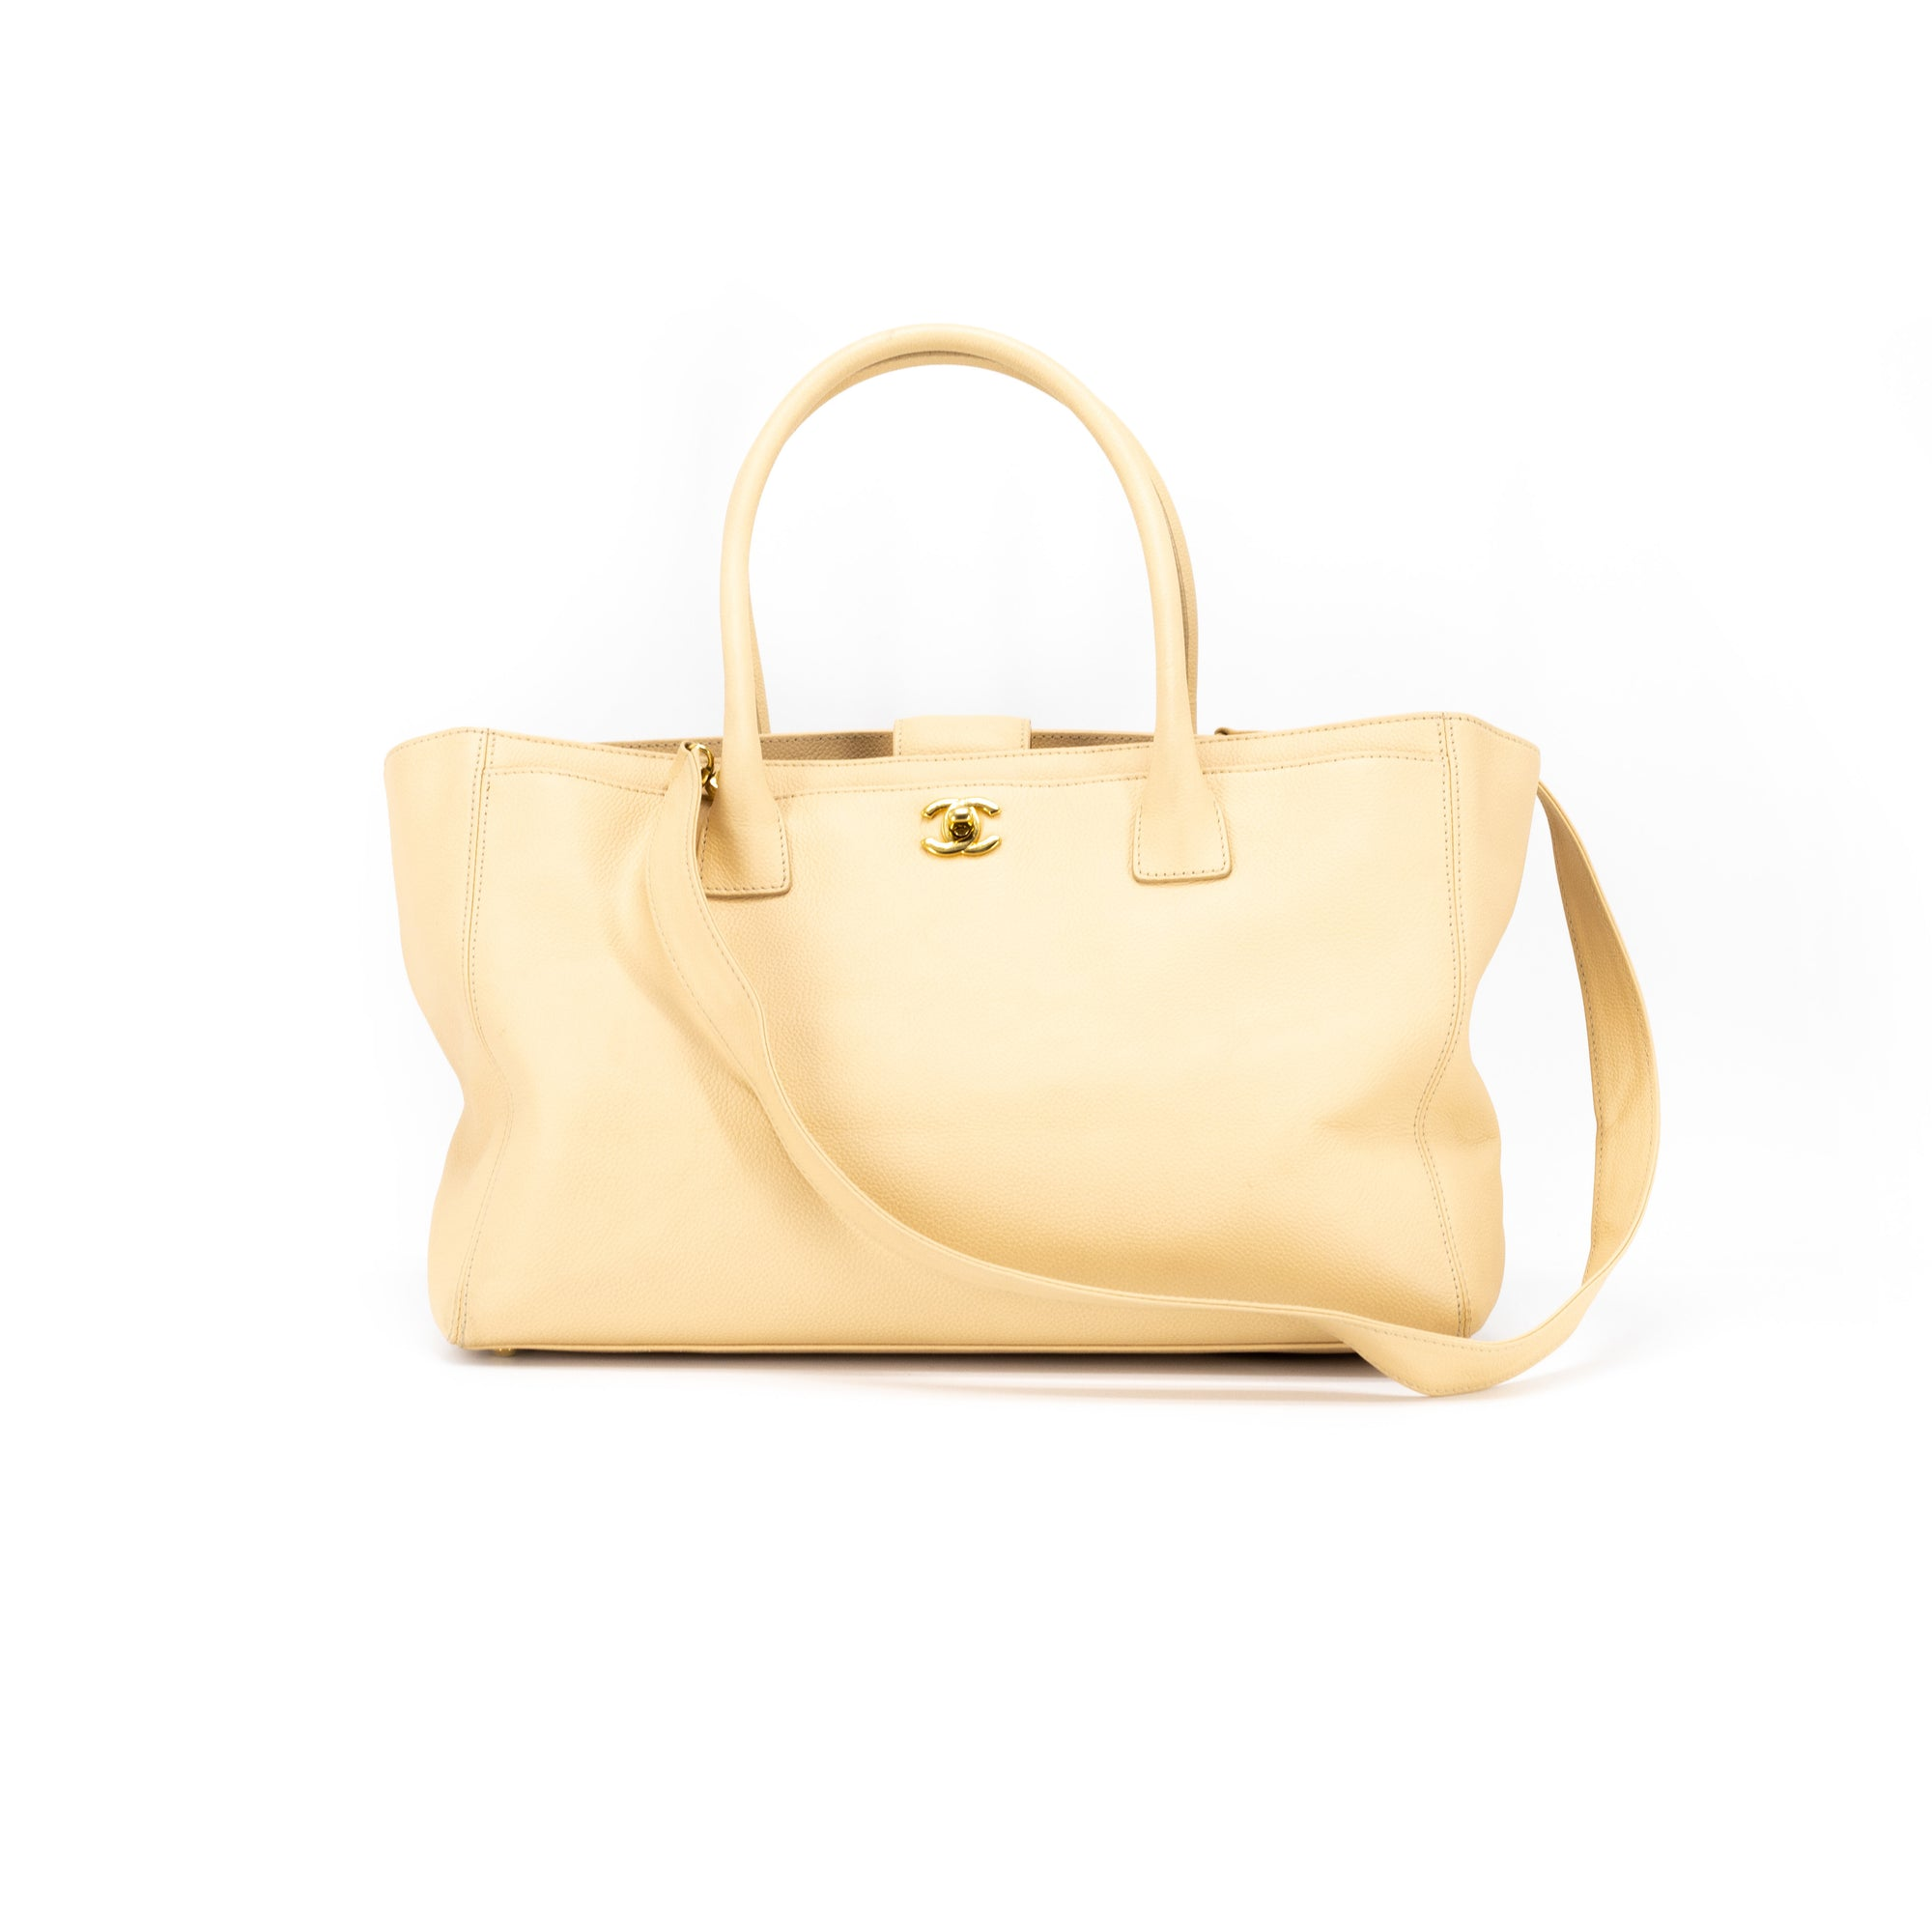 3e9c3c6ac7b1 Chanel Caviar Executive Cerf Tote Beige - THE PURSE AFFAIR